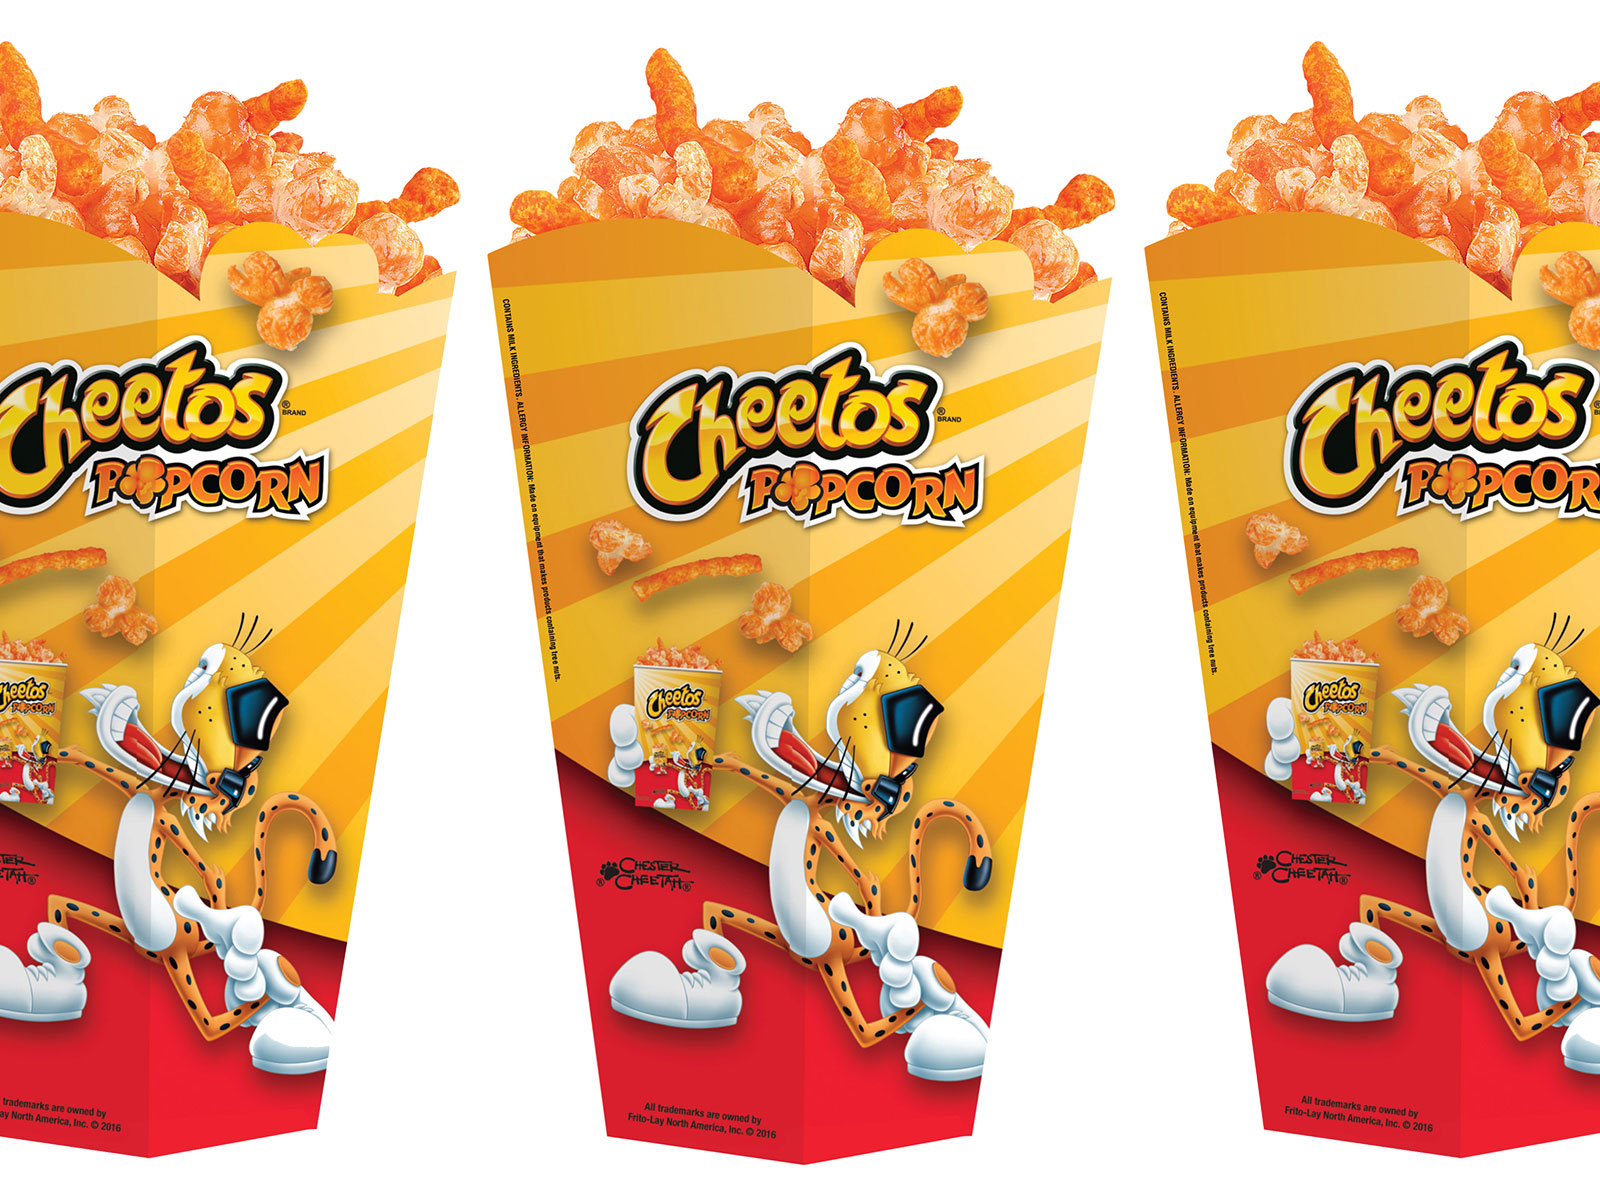 cheetos popcorn at regal move theatres